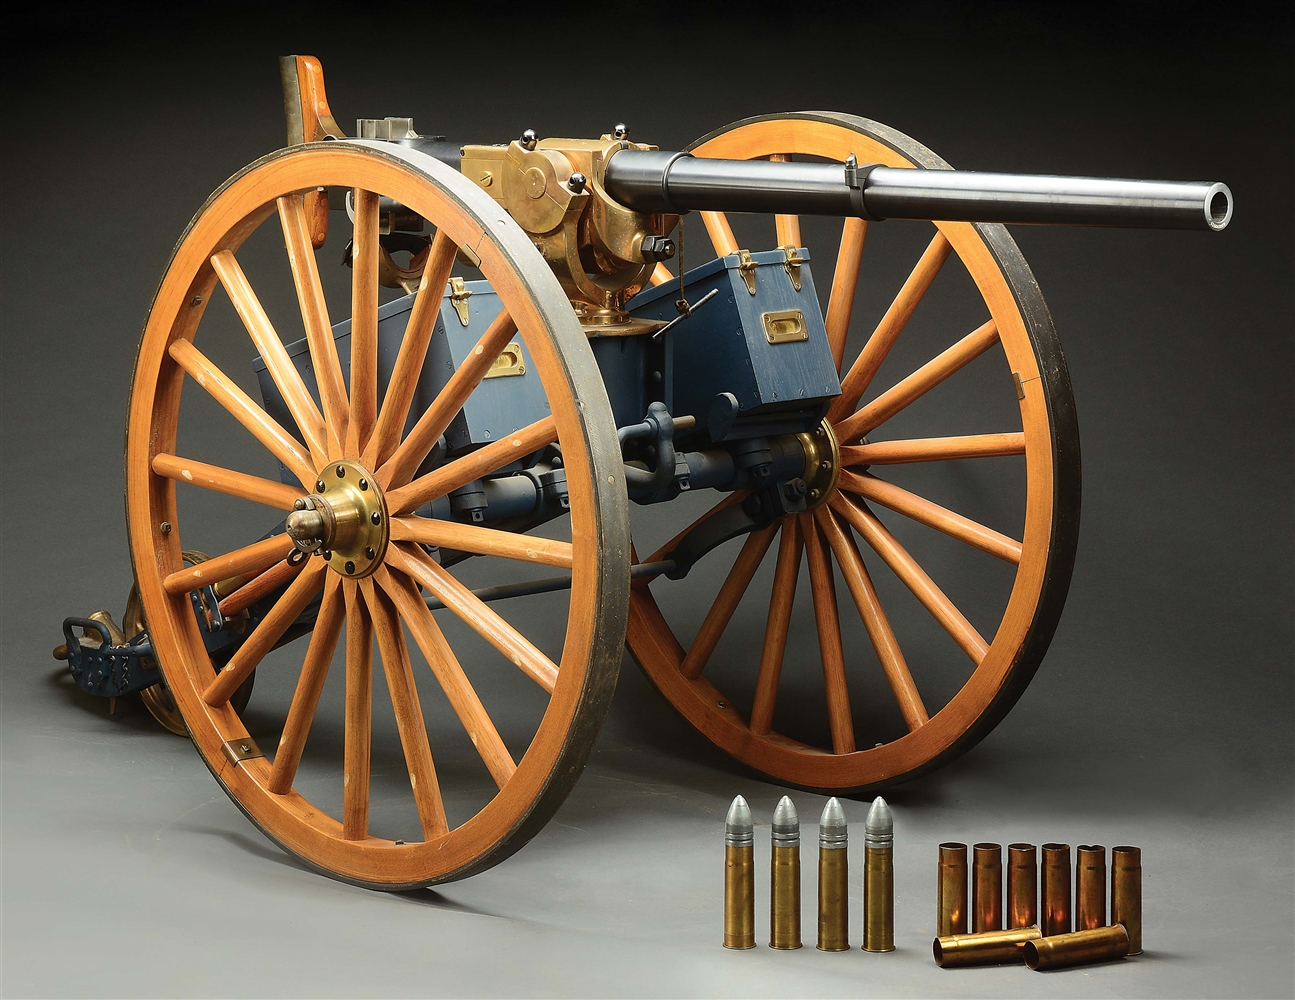 (D) MUSEUM LEVEL FANTASTIC CONDITION AMERICAN AND BRITISH MANUFACTURING COMPANY UNITED STATES NAVY MARK II 1 POUNDER CANNON ON ORIGINAL CARRIAGE (DESTRUCTIVE DEVICE).